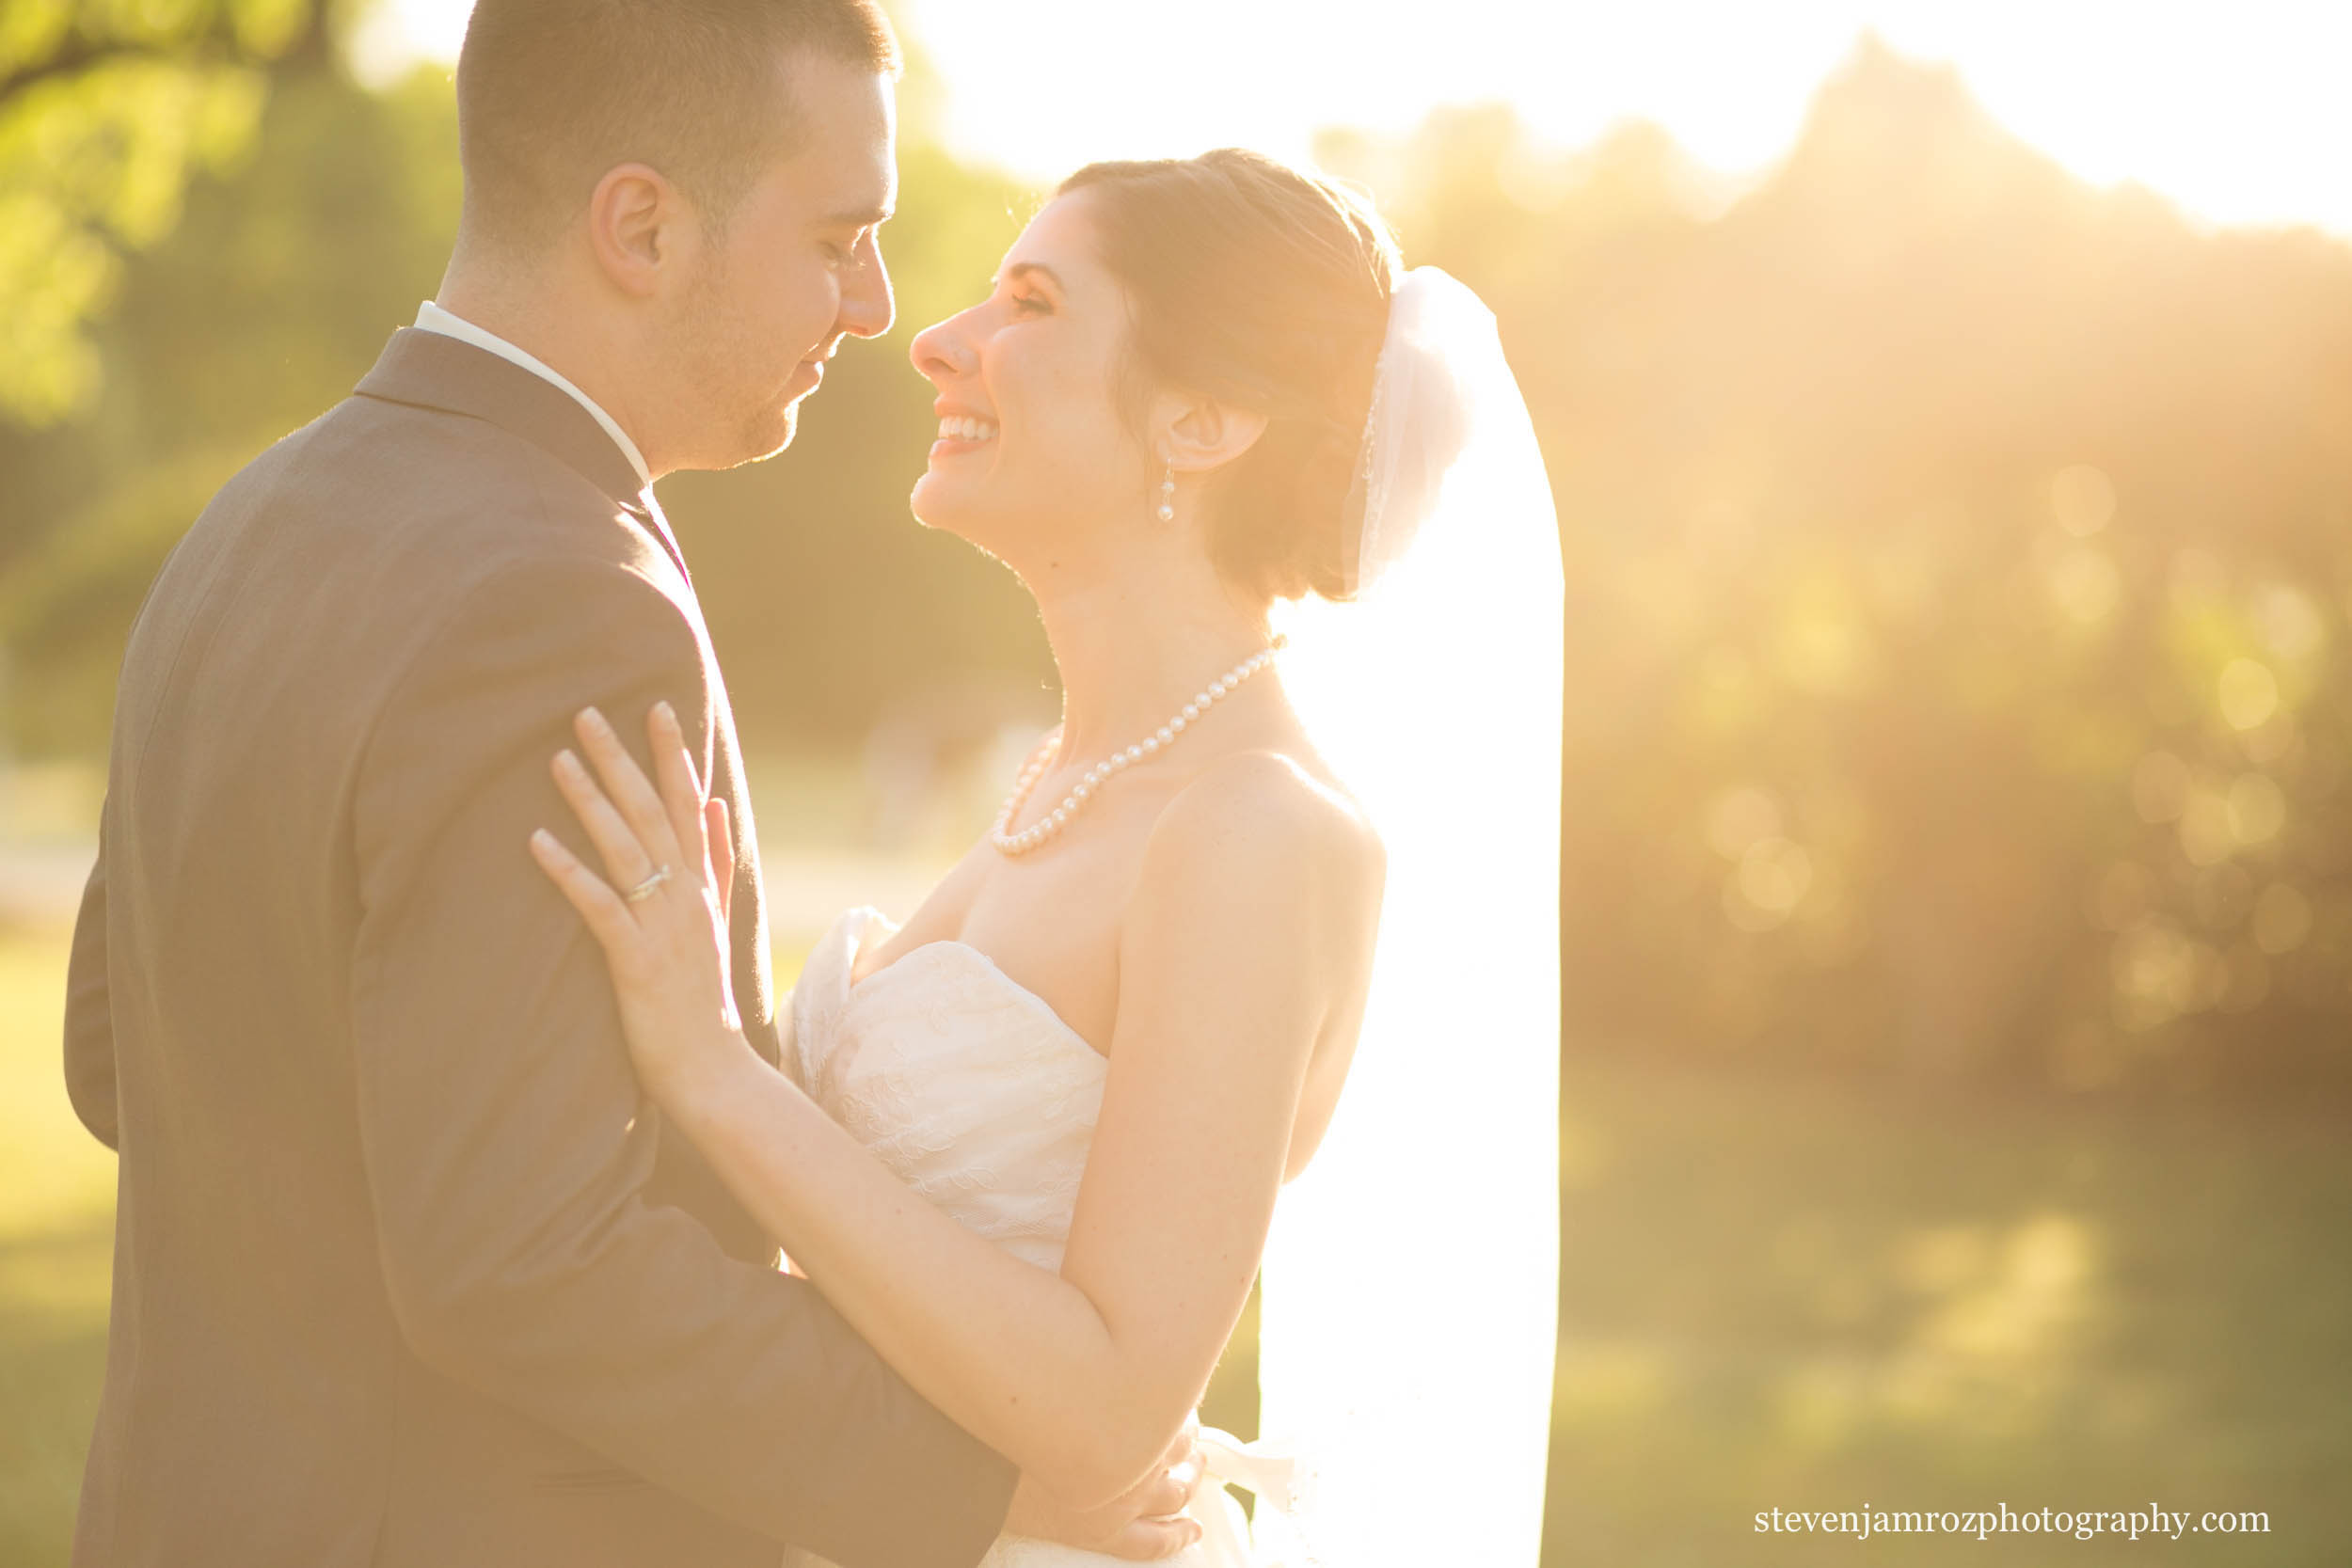 sunflare-portrait-bride-groom-wedding-raleigh-steven-jamroz-photography-0331.jpg